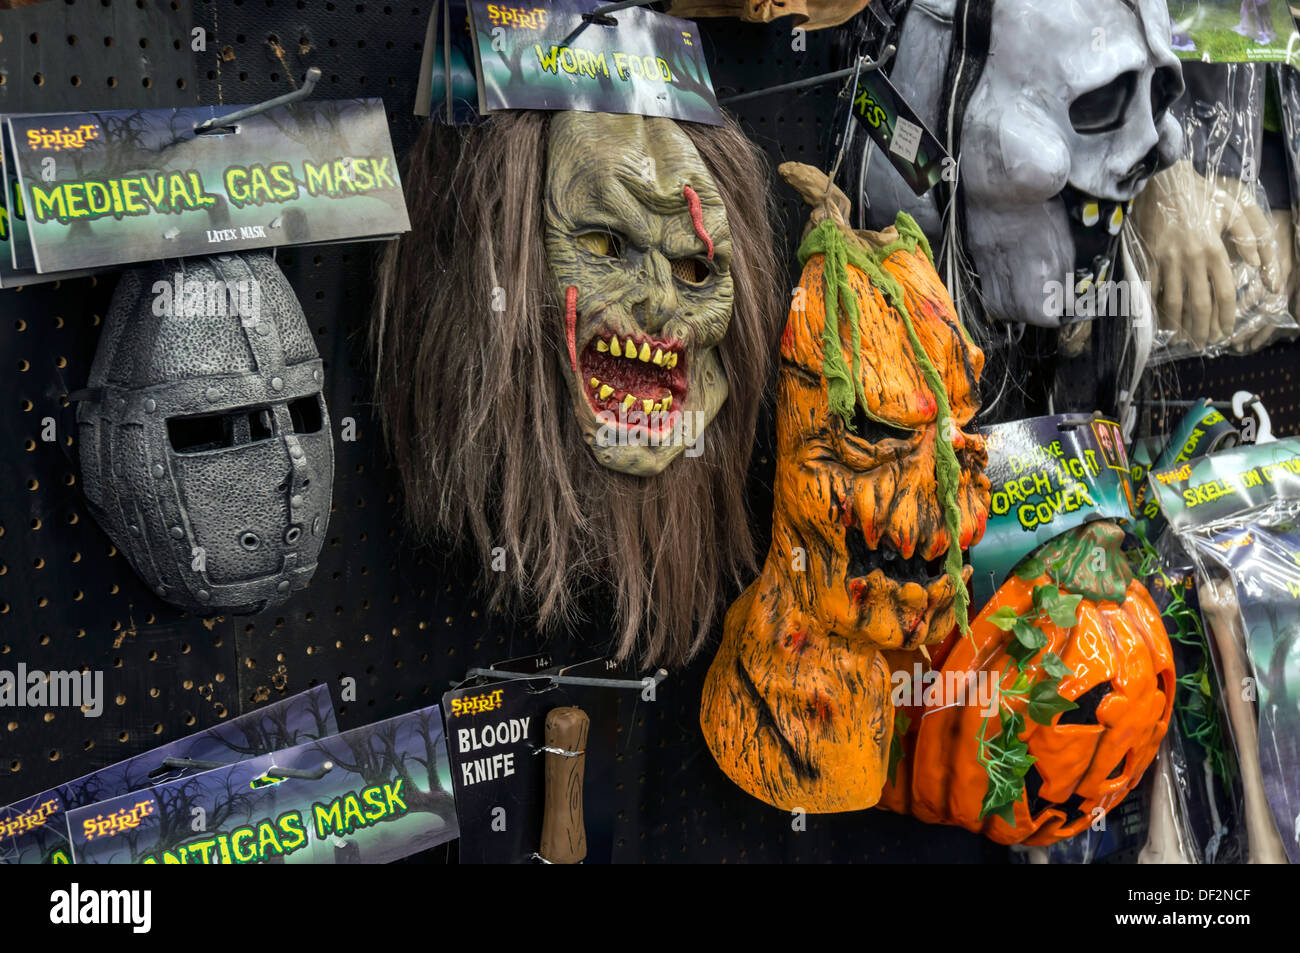 spooky scary halloween holiday masks of monsters demons and ghouls hanging on store display - Spooky Halloween Store